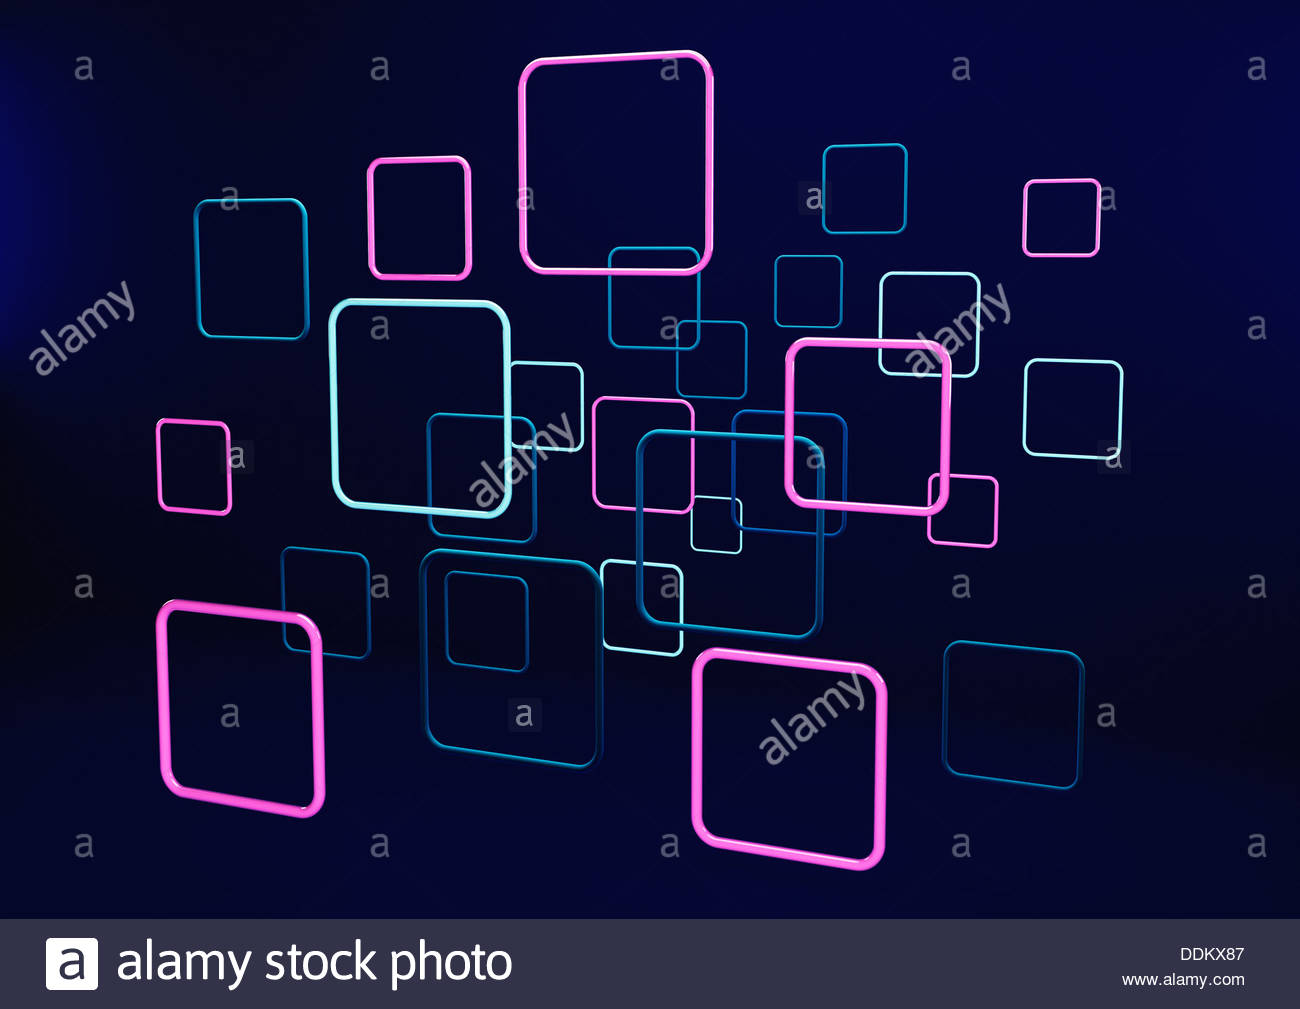 Abstract neon squares on black background - Stock Image